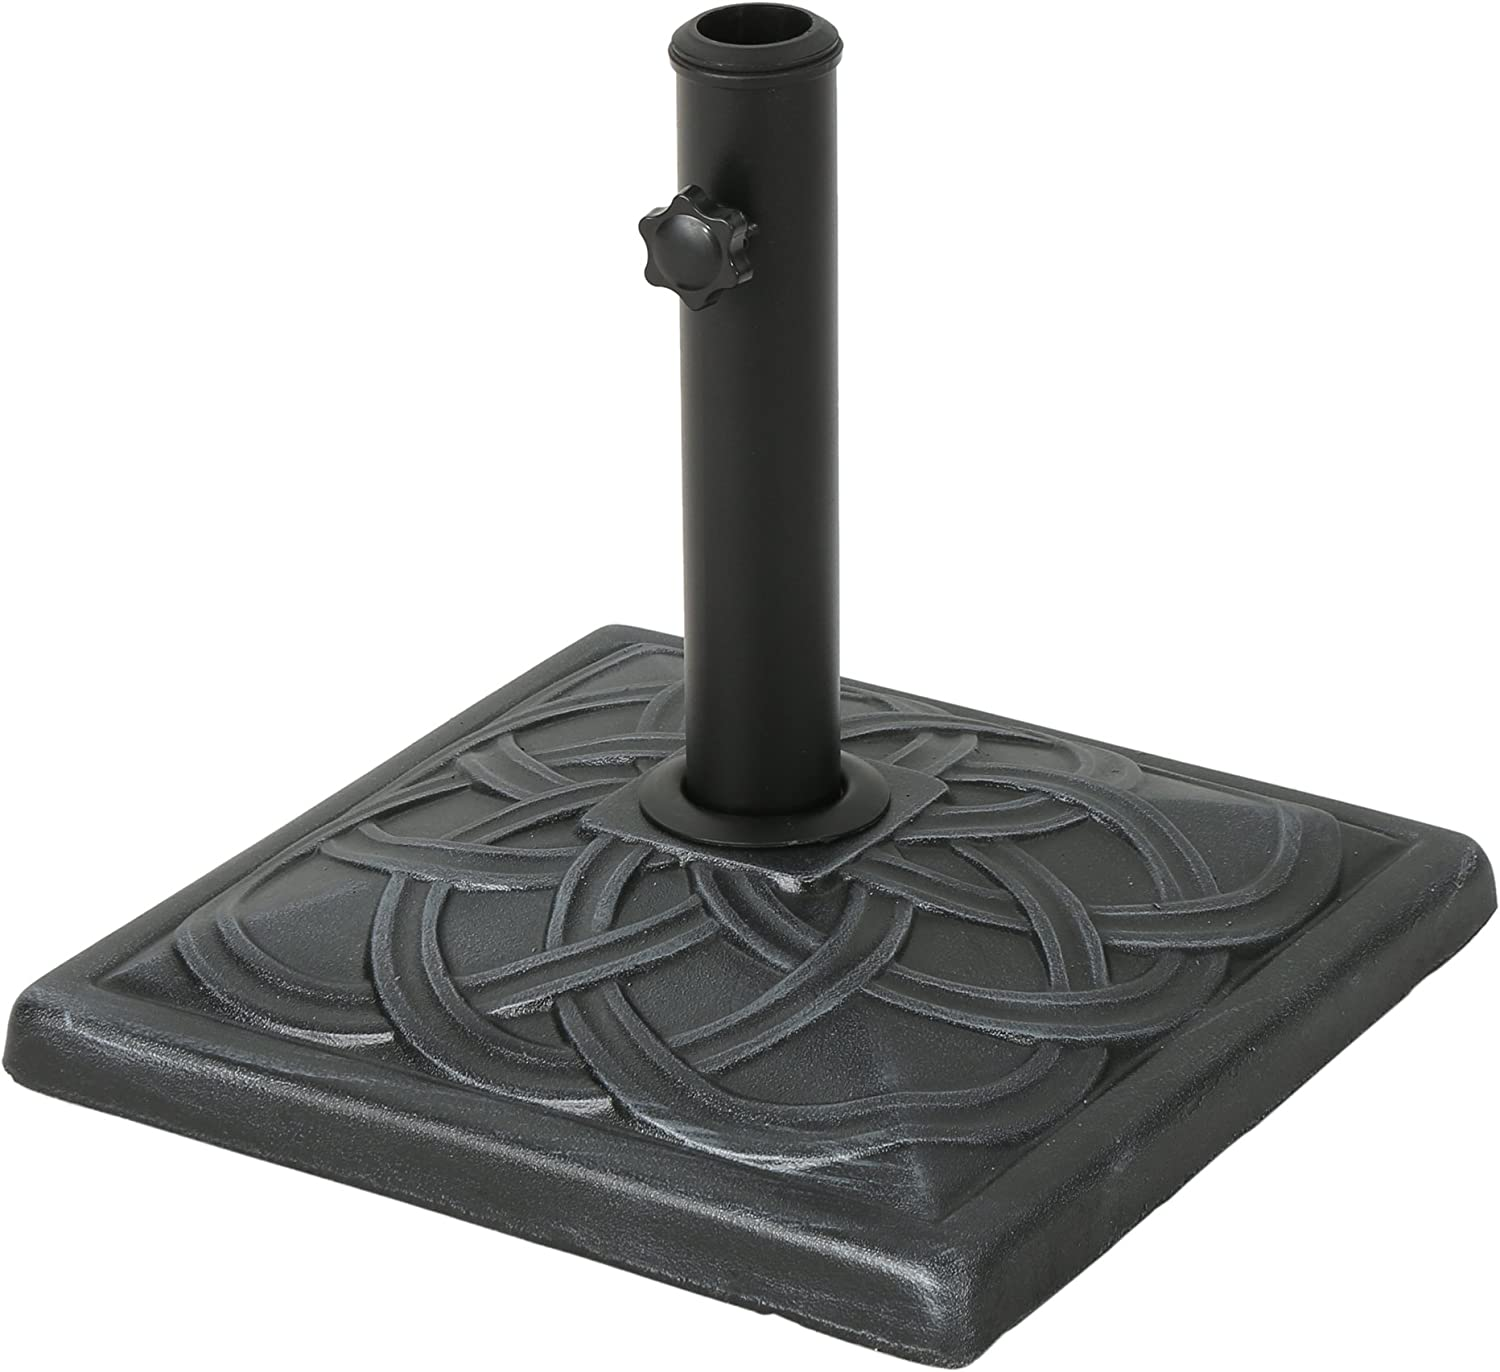 Christopher Knight Home Amaya Outdoor Concrete Square Umbrella Base 29LBS in Hammered Iron